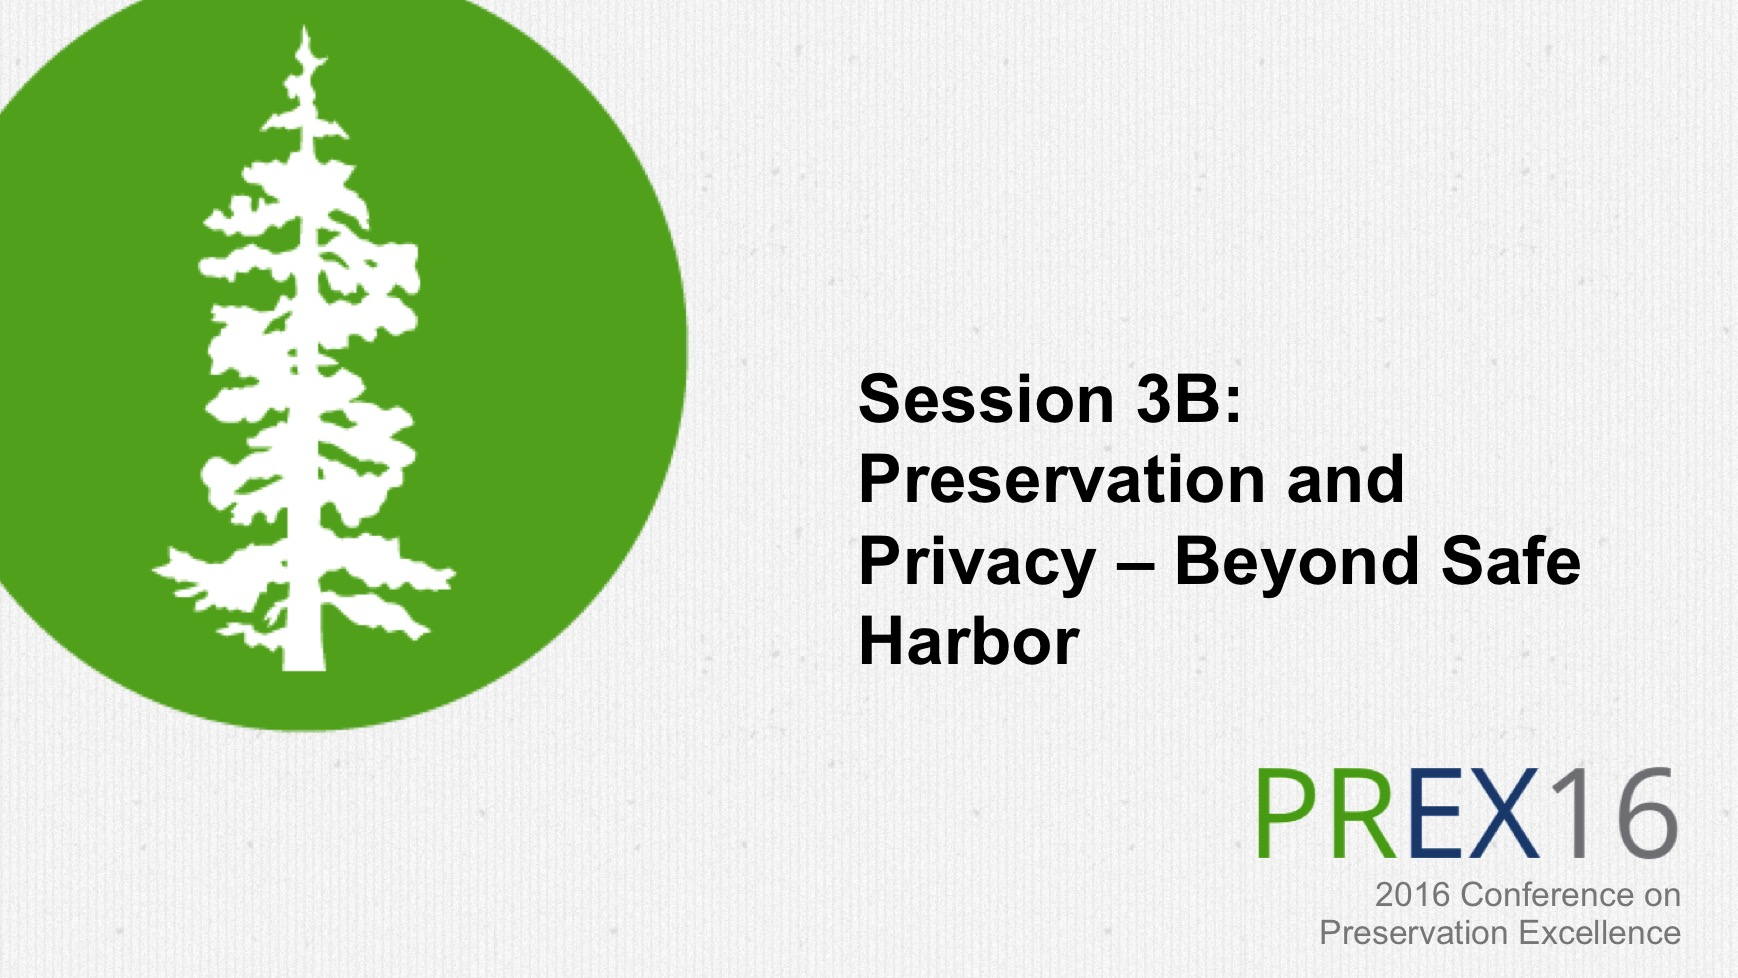 Session 3B: Preservation and Privacy — Beyond Safe Harbor